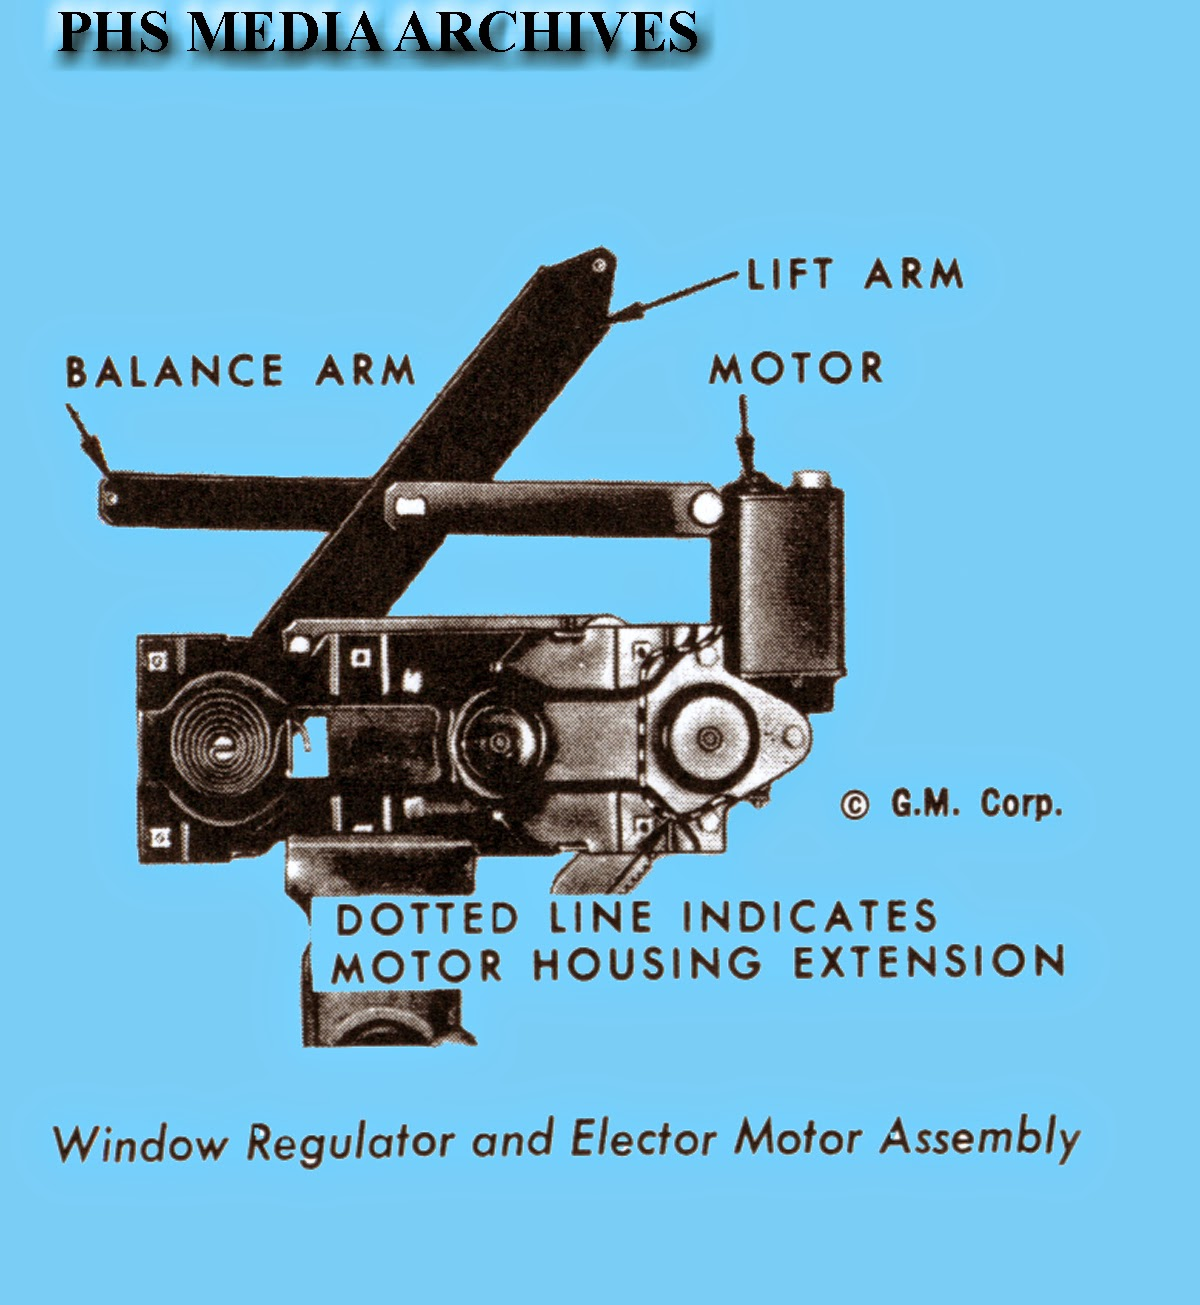 Tech Files Troubleshooting And Fixing Gm Power Windows 1968 1973 Need Wiring Diagram For Window Switcheswindow14jpg This Is What The Motor Looks Like When Attached To Lift Balance Arms